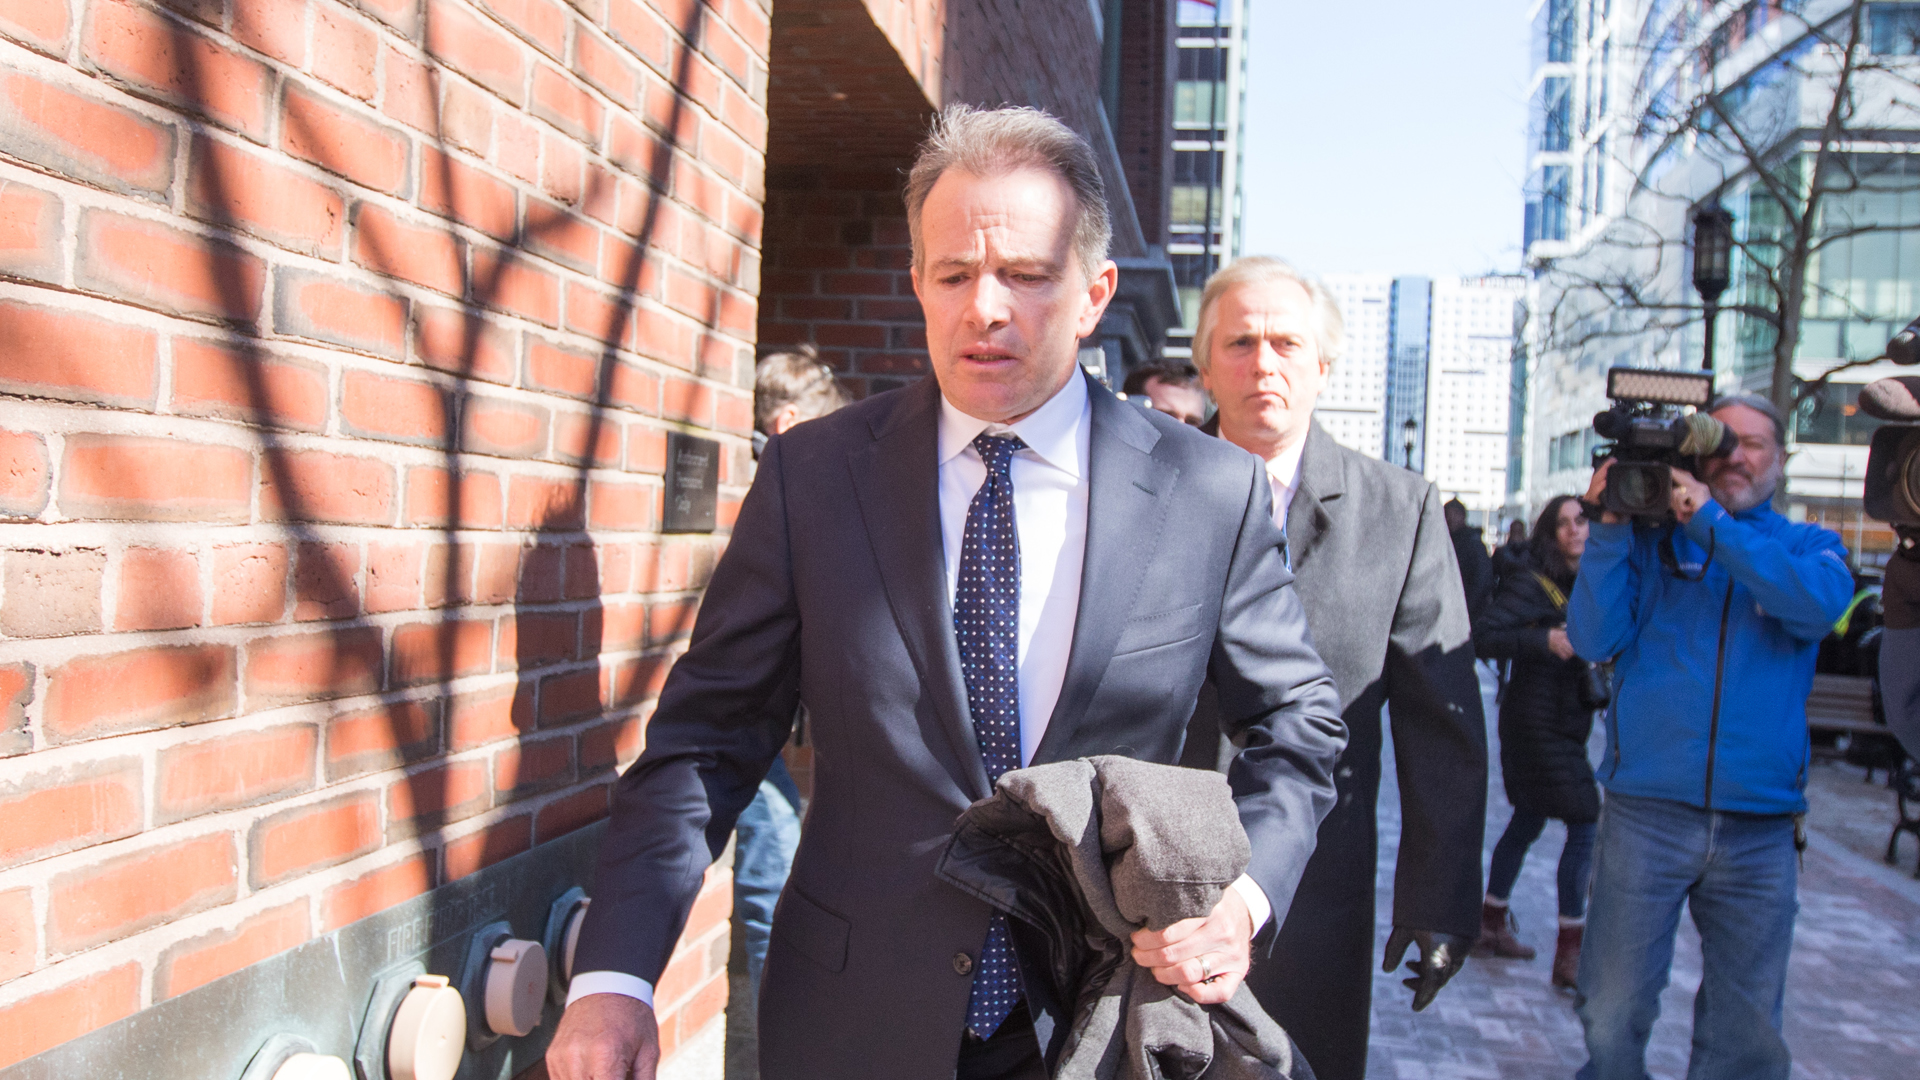 Gordon Ernst, former head coach of the men's and women's tennis teams at Georgetown University leaves following his arraignment at Boston Federal Court on March 25, 2019 in Boston. (Credit: Eisen/Getty Images)